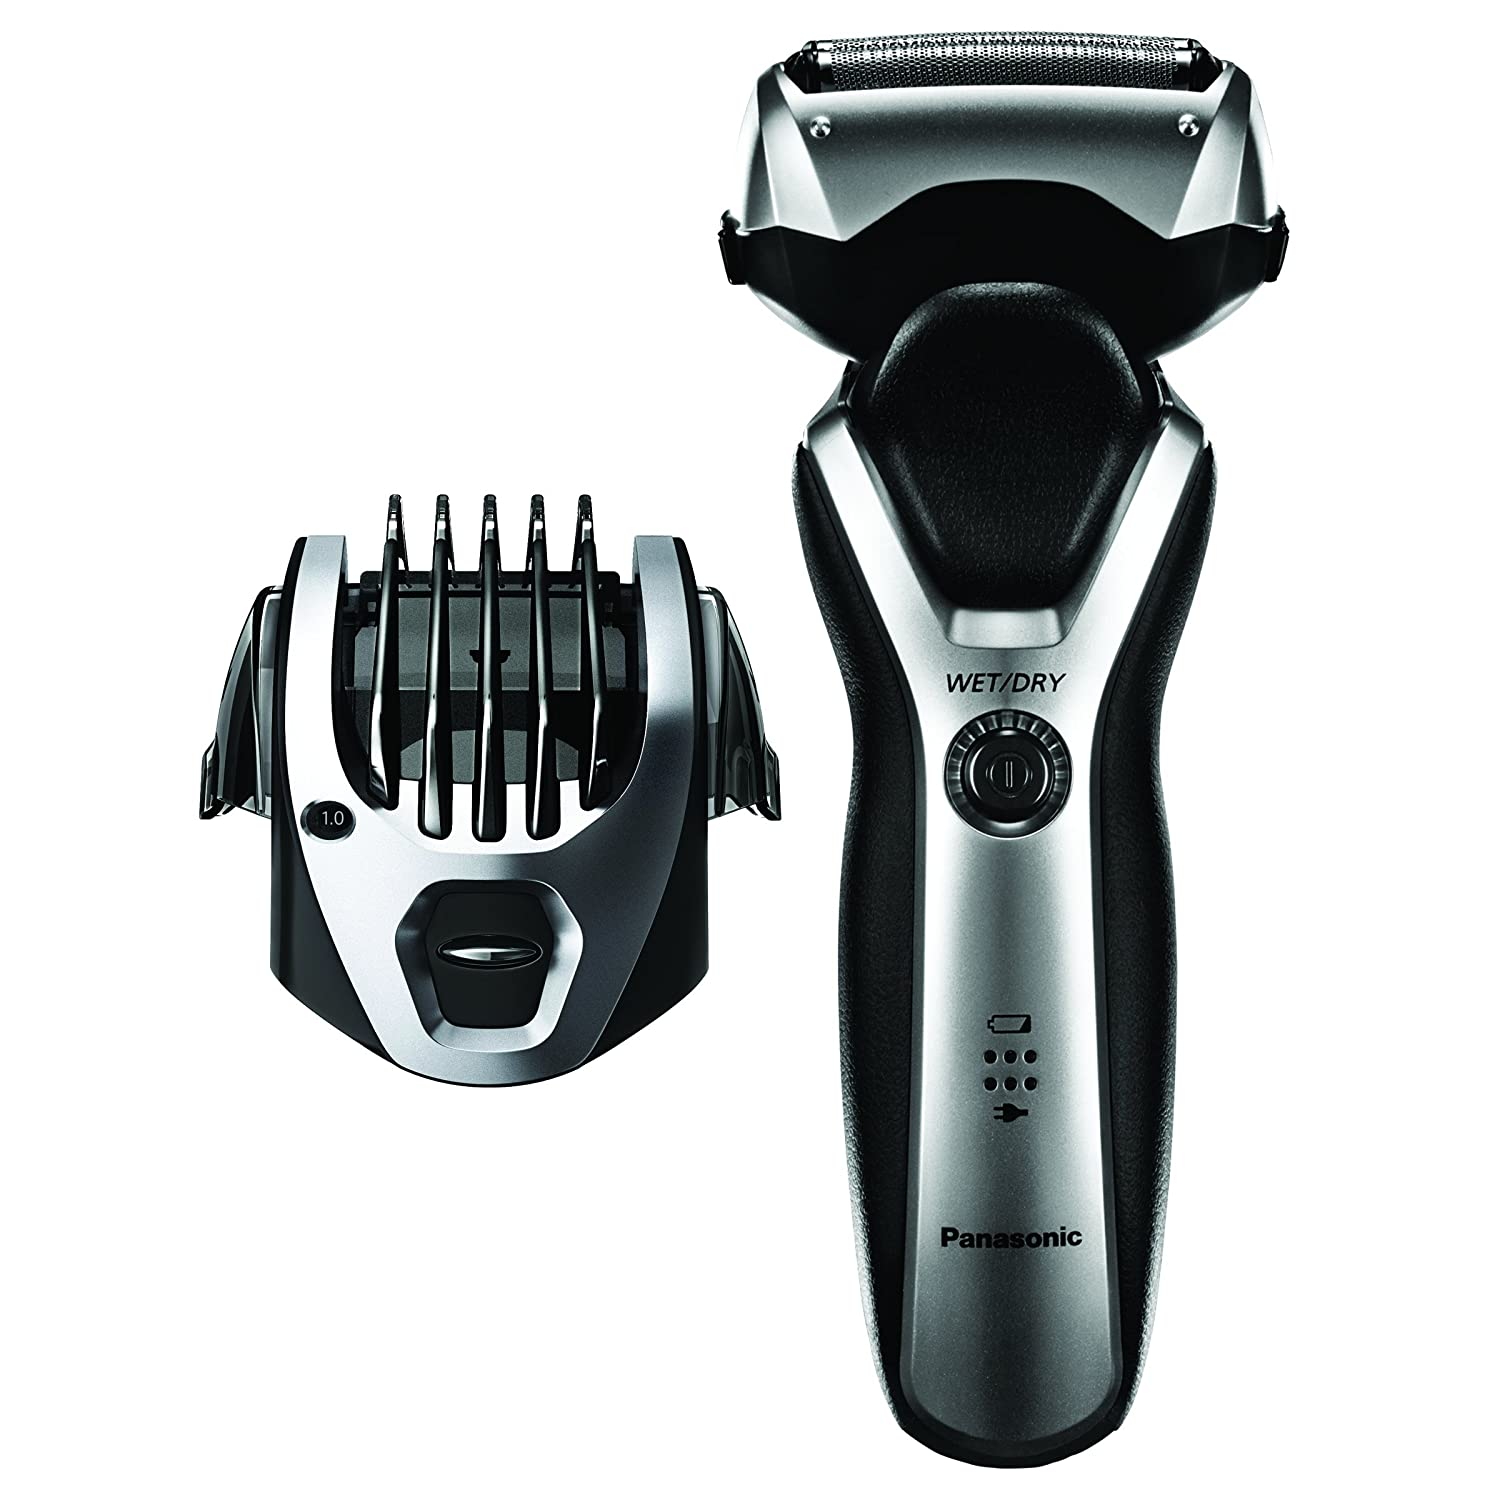 Panasonic ES-RT47-S Arc3 Electric Razor, Men s 3-Blade Cordless, Comb Trimming Attachment Included, Wet Dry Operation